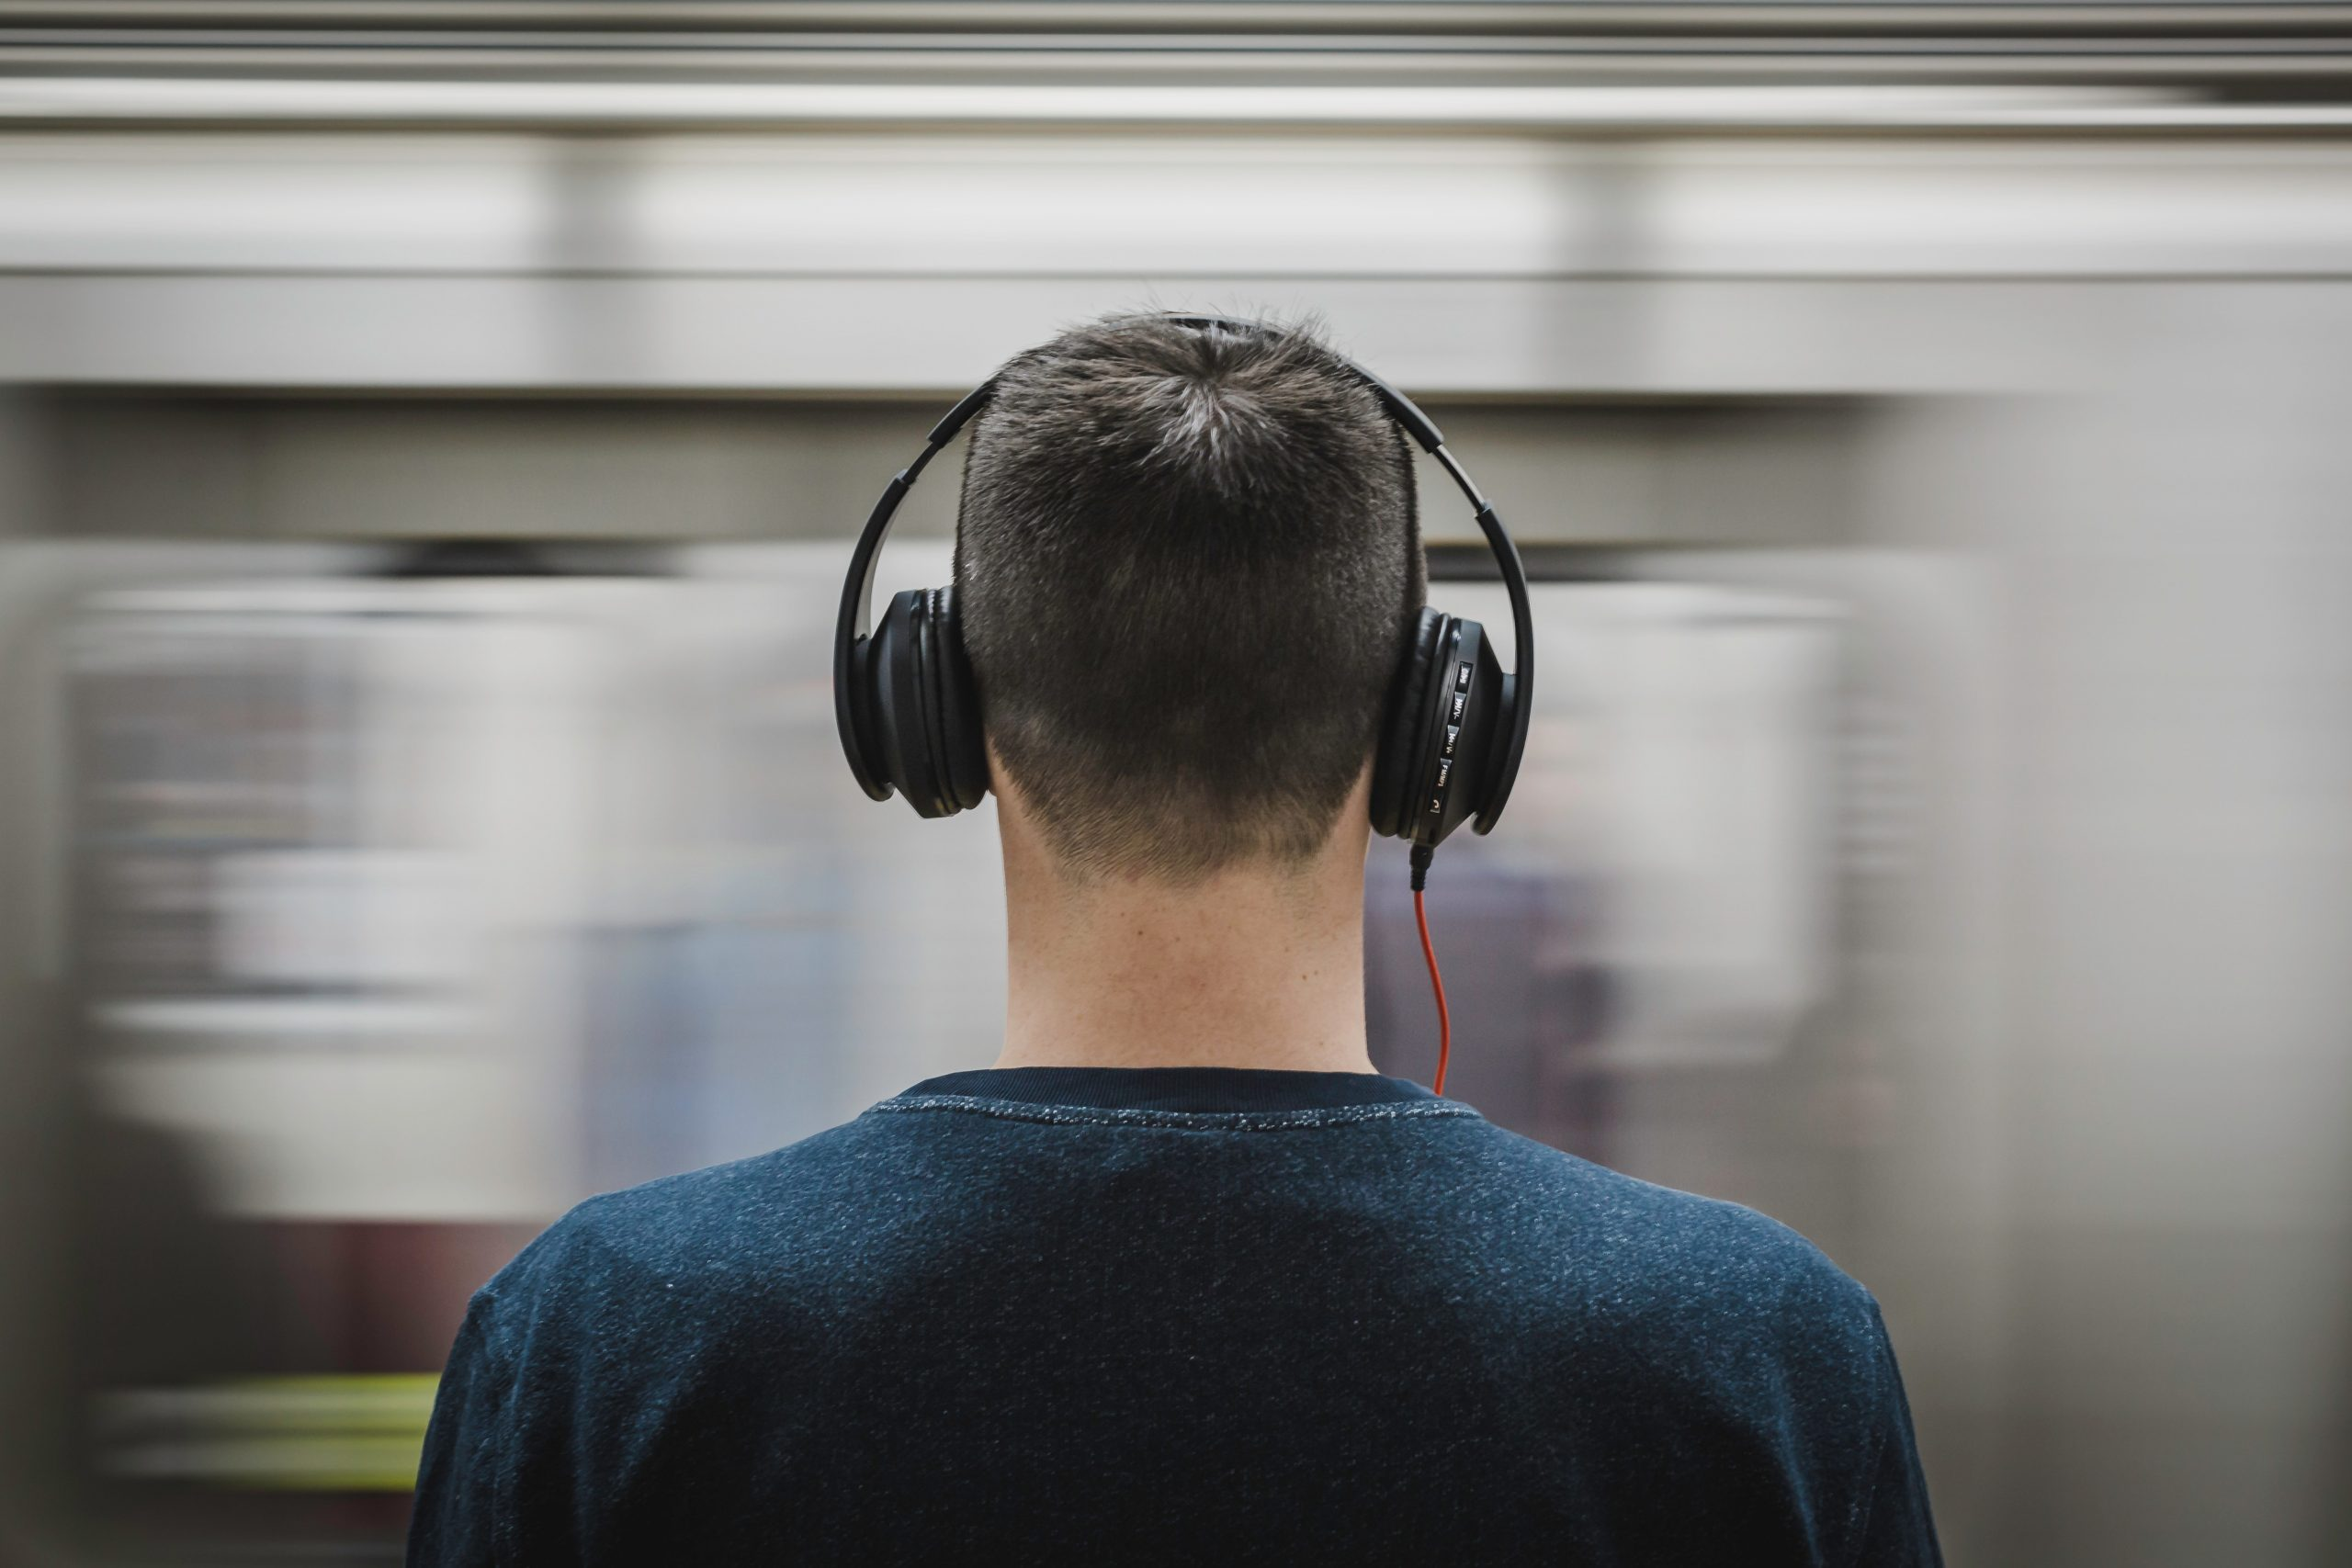 Best audiobooks on Audible